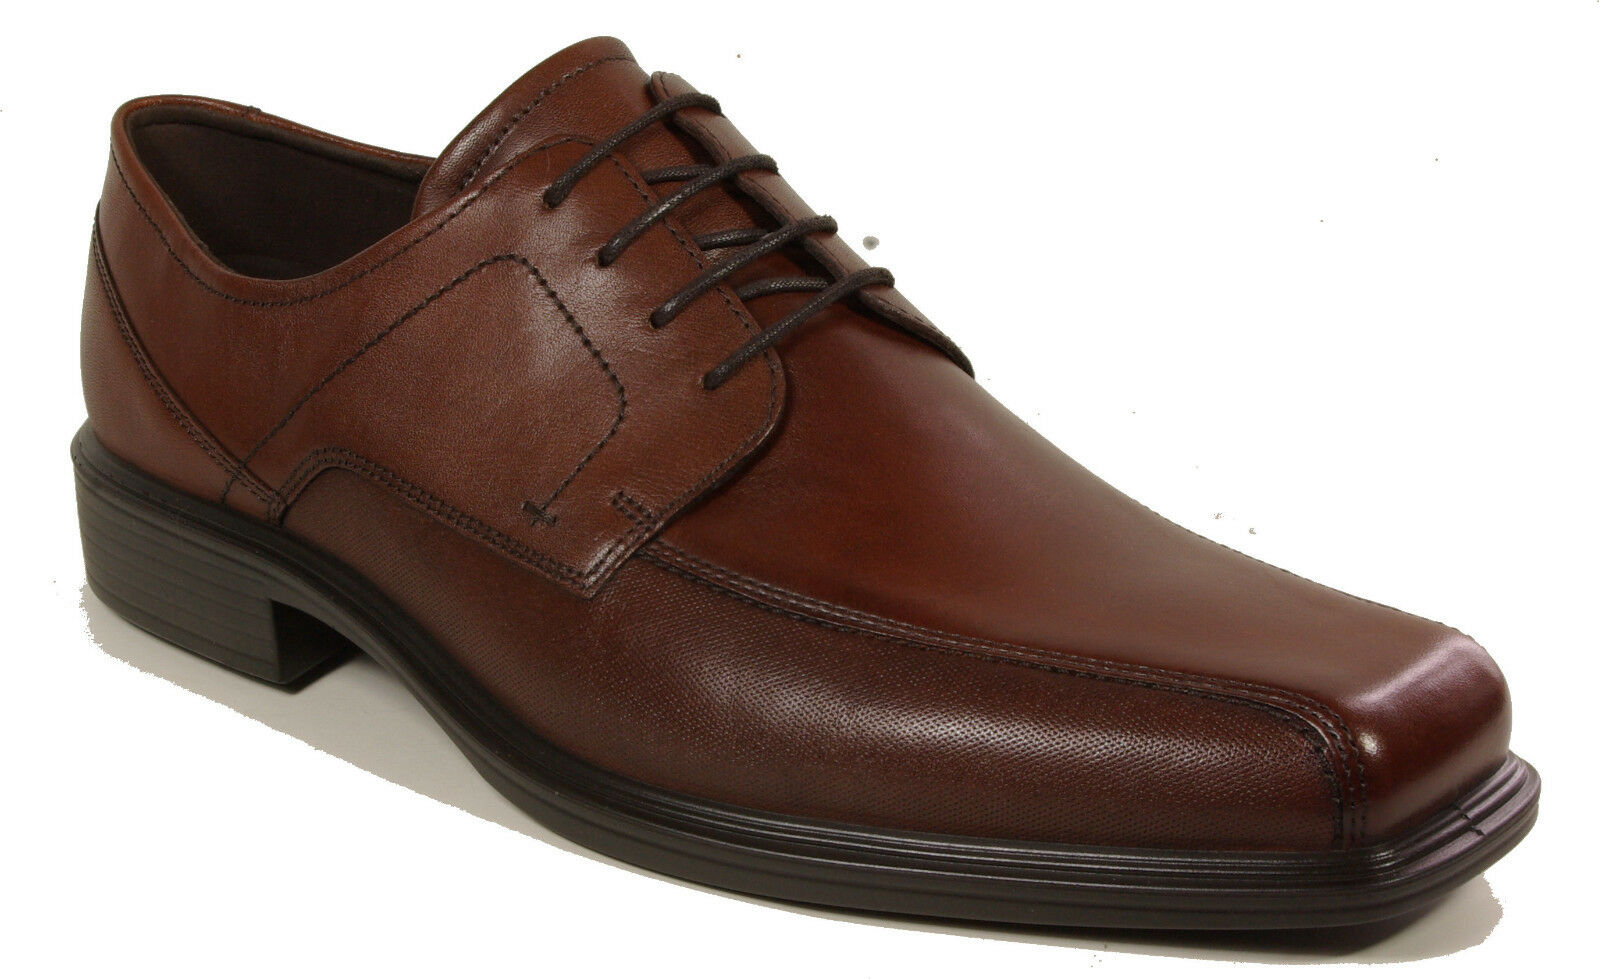 ECCO shoes model JOHANNESBURG lace brown leather NEW